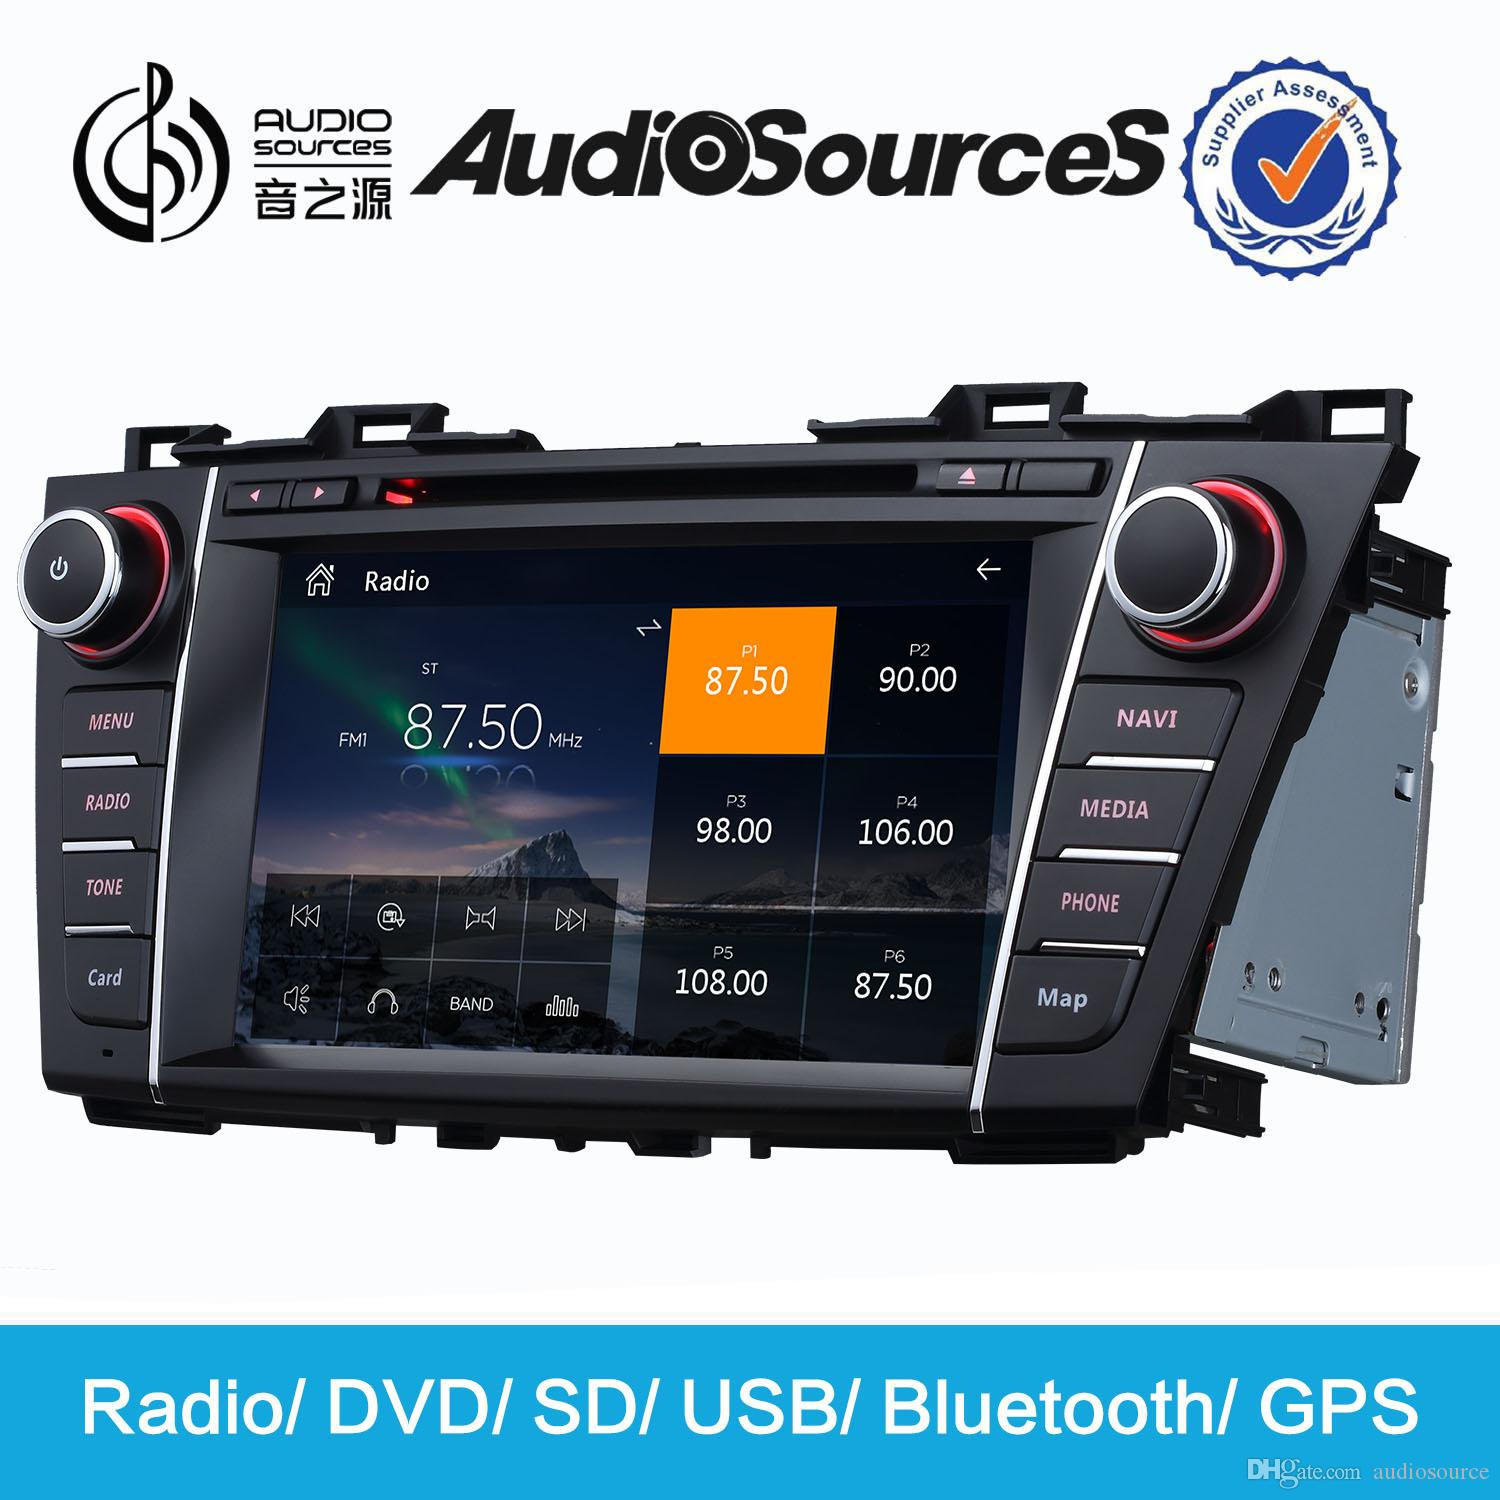 Car Audio Websites